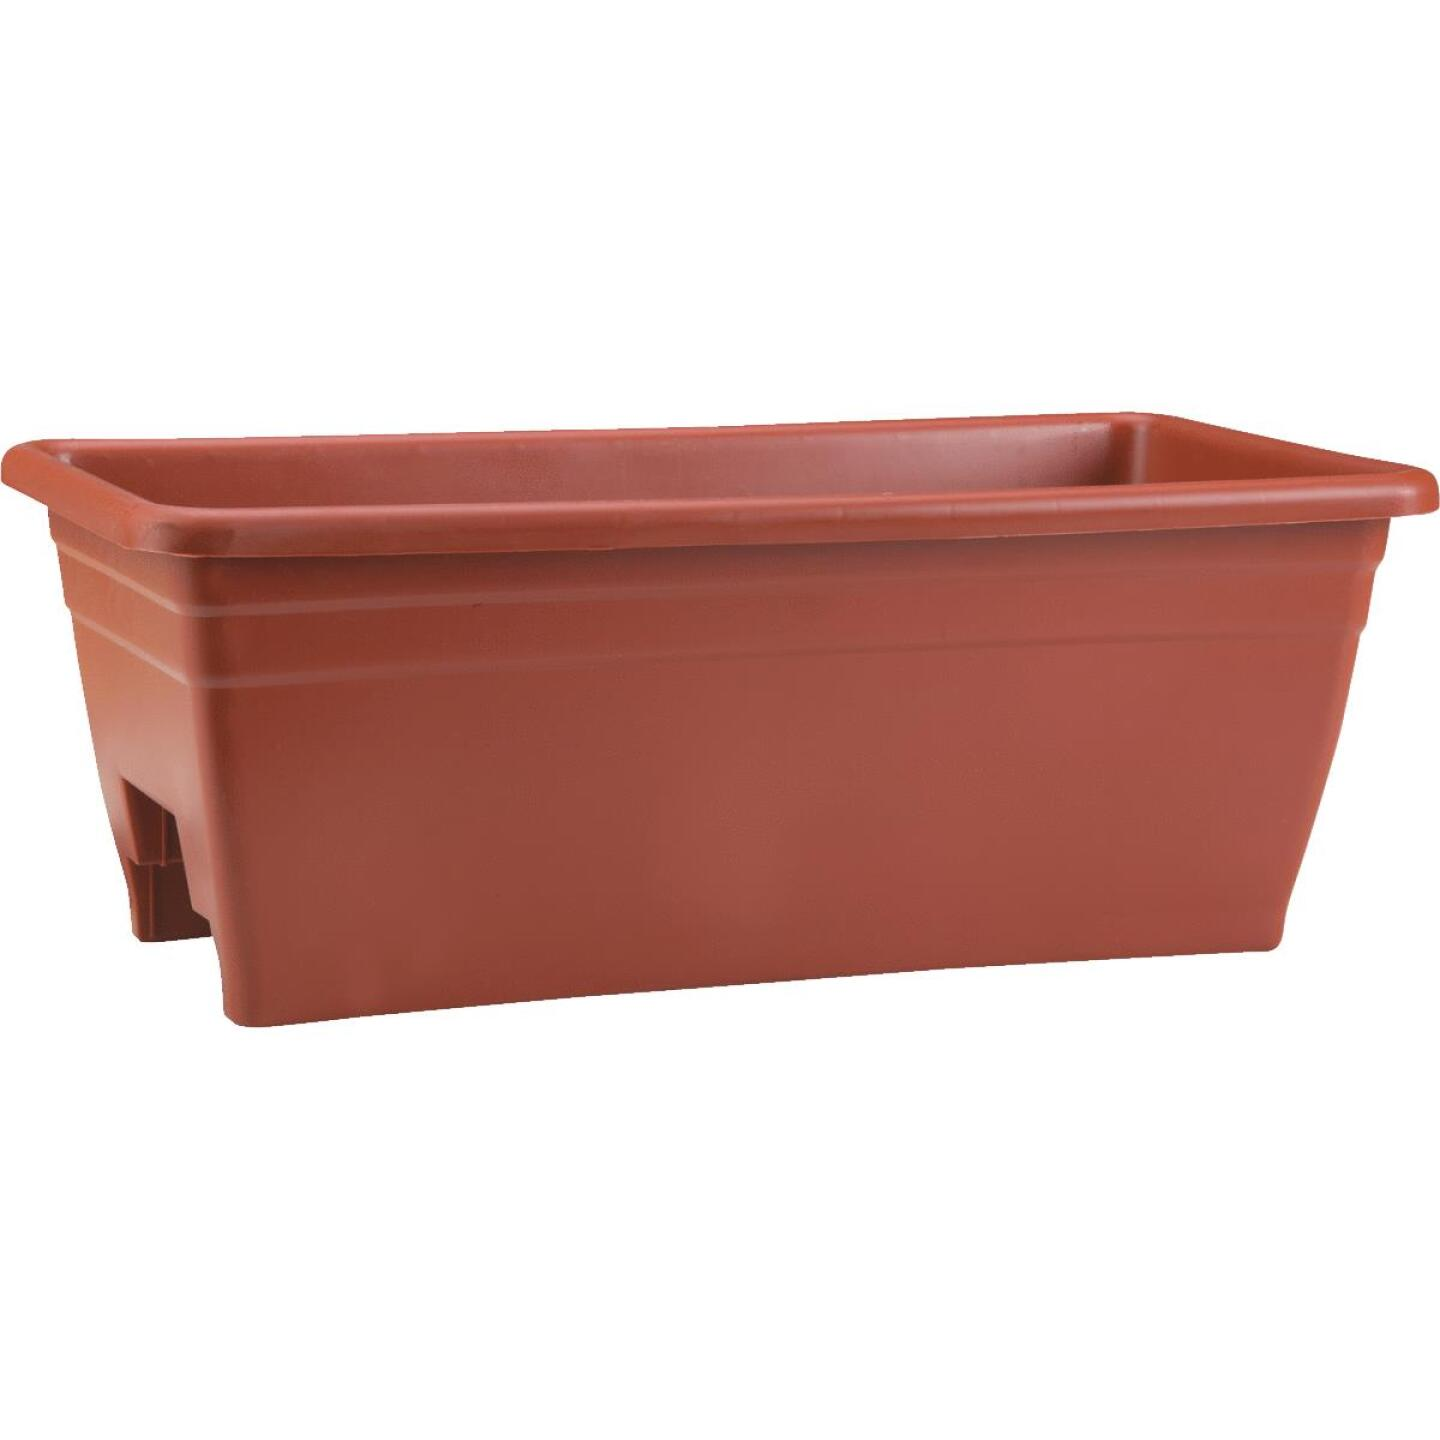 Myers 8 In. H. x 24 In. L. Poly Terra Cotta Deck Rail Planter Image 1